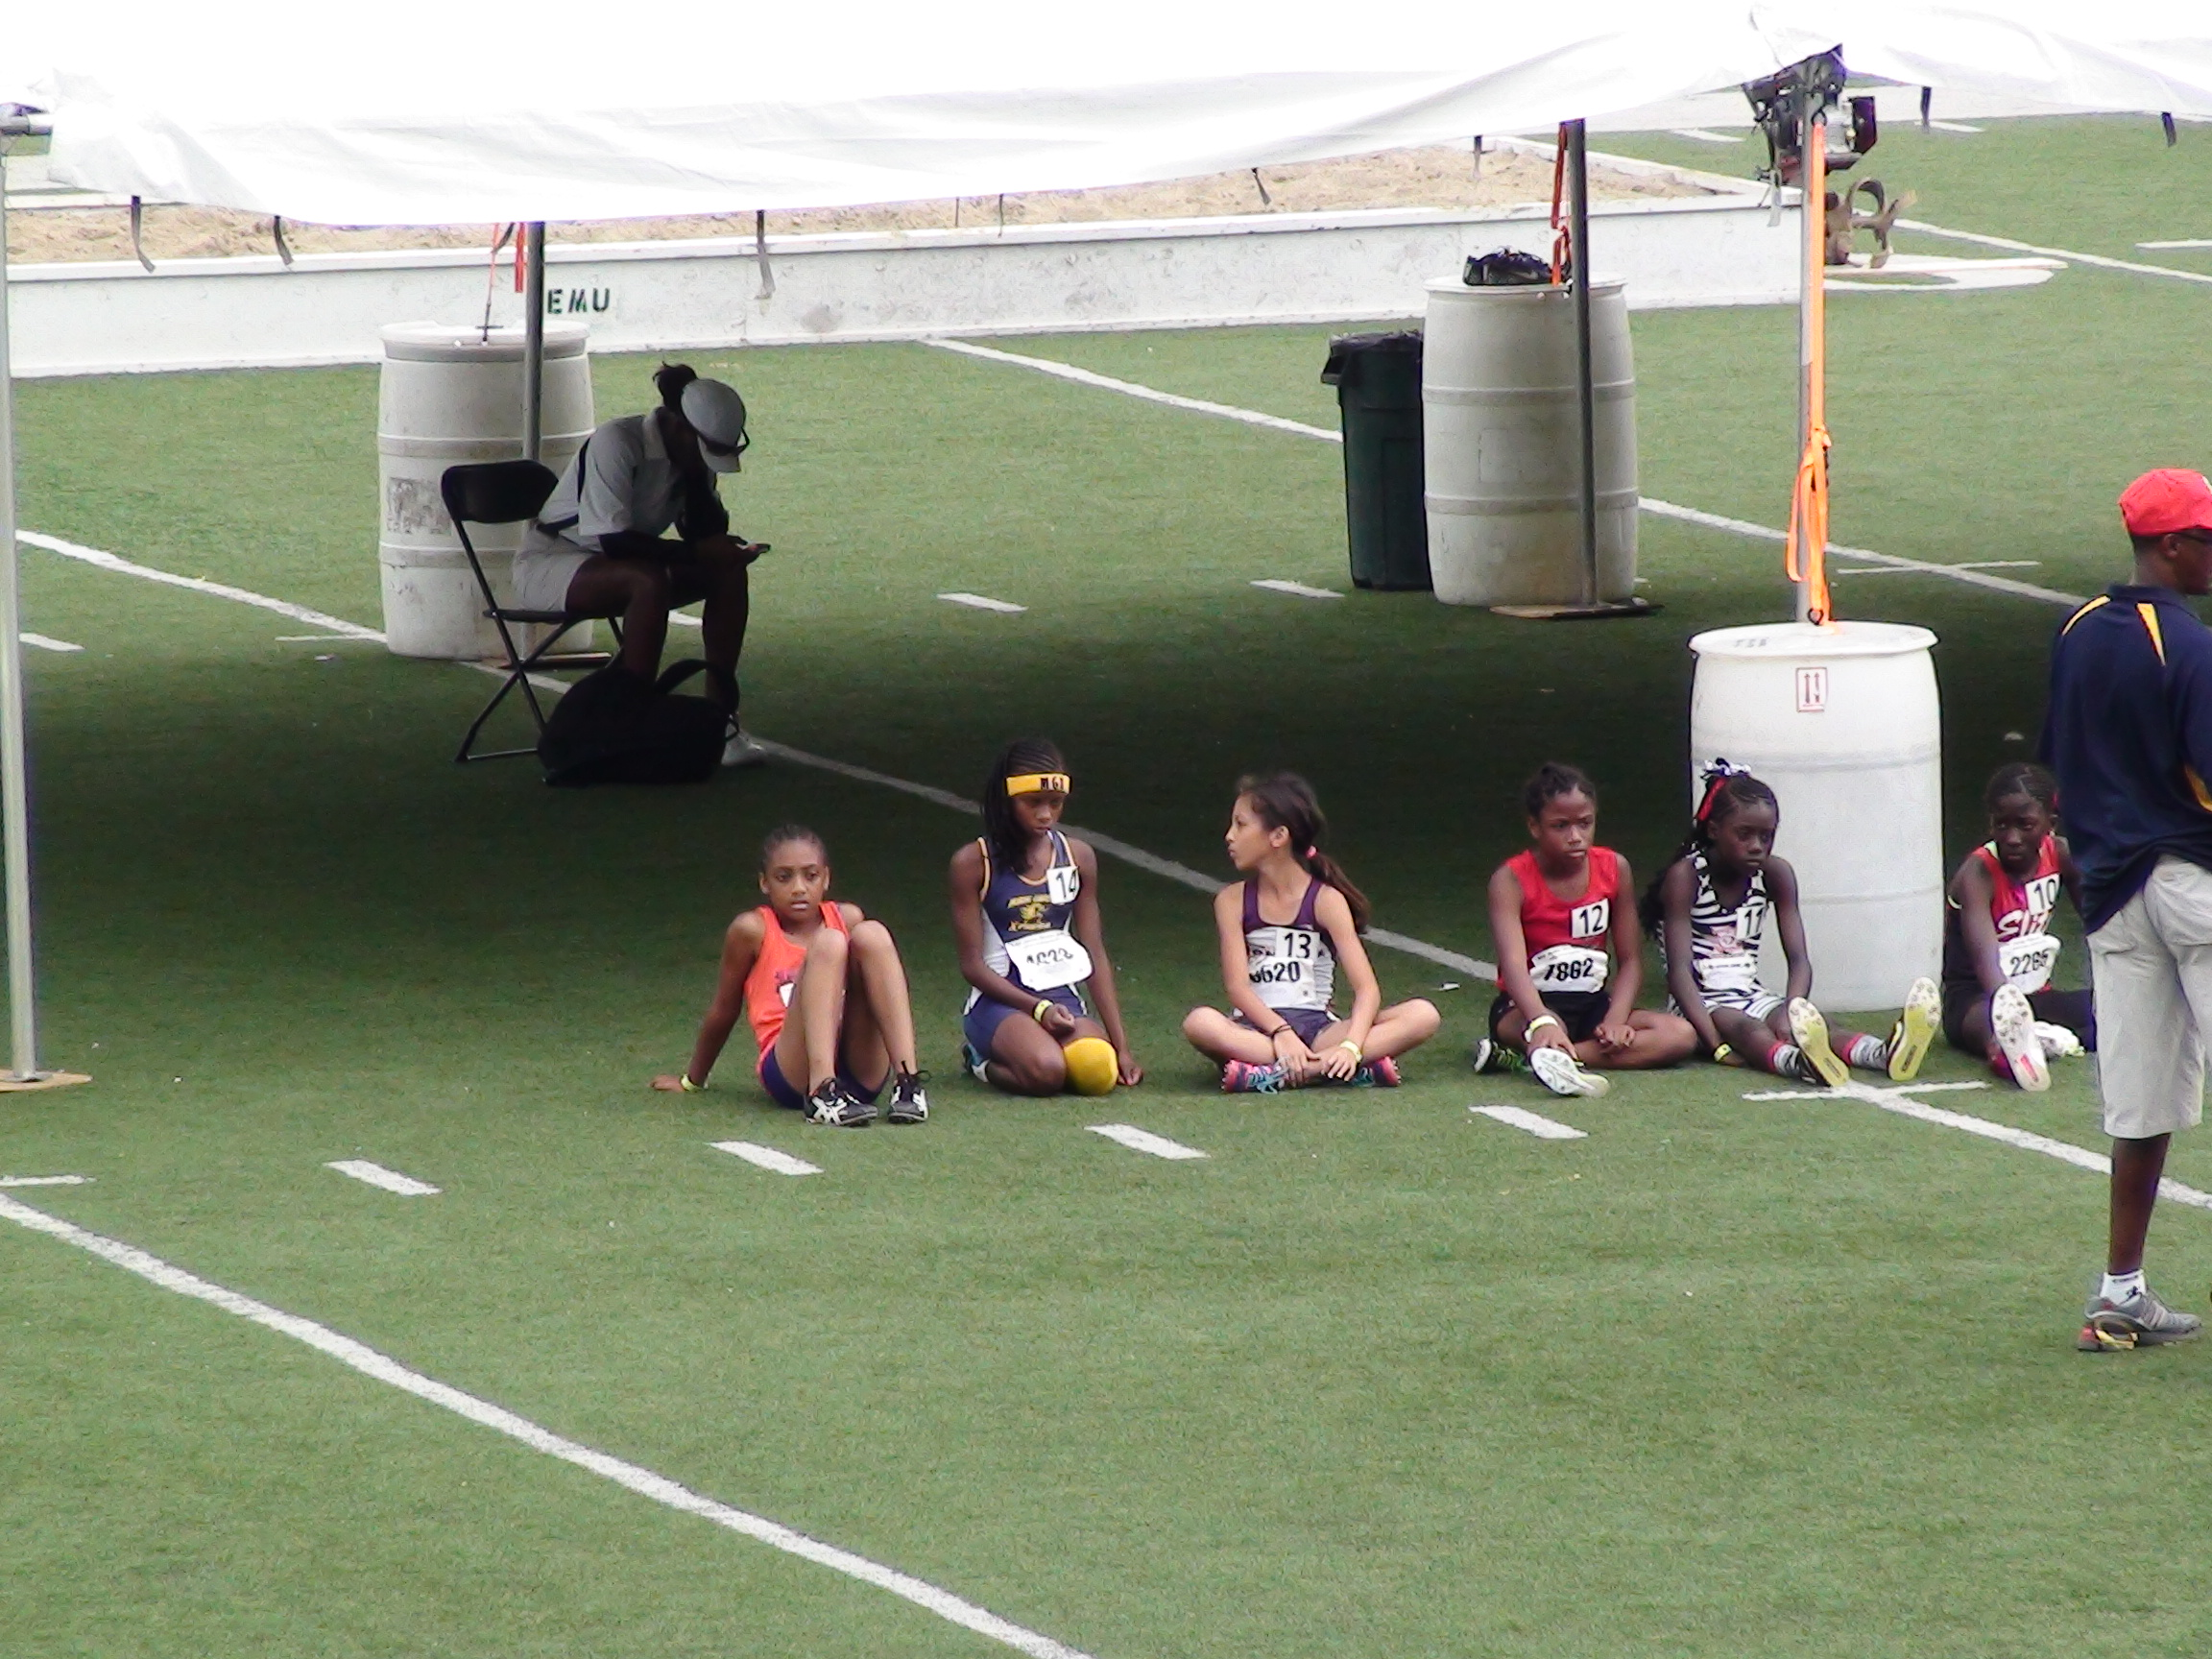 Michelle waiting to run her 800m final